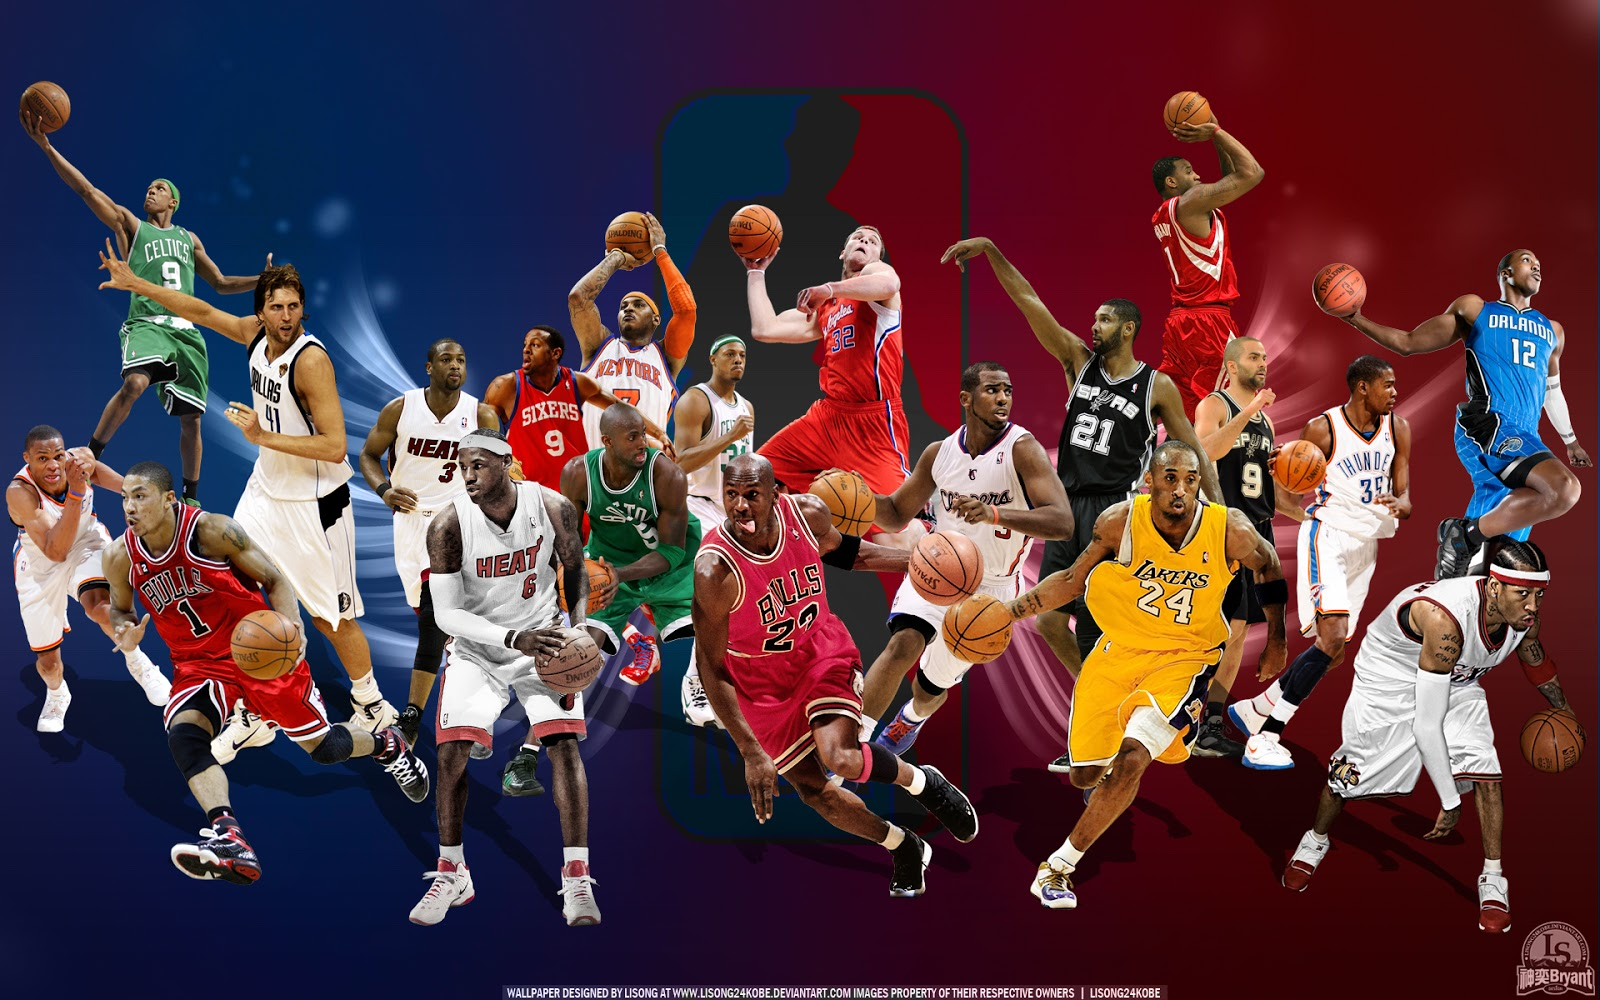 Fondos para whatsapp patada de caballo nba fondos de - Nba all teams wallpaper ...